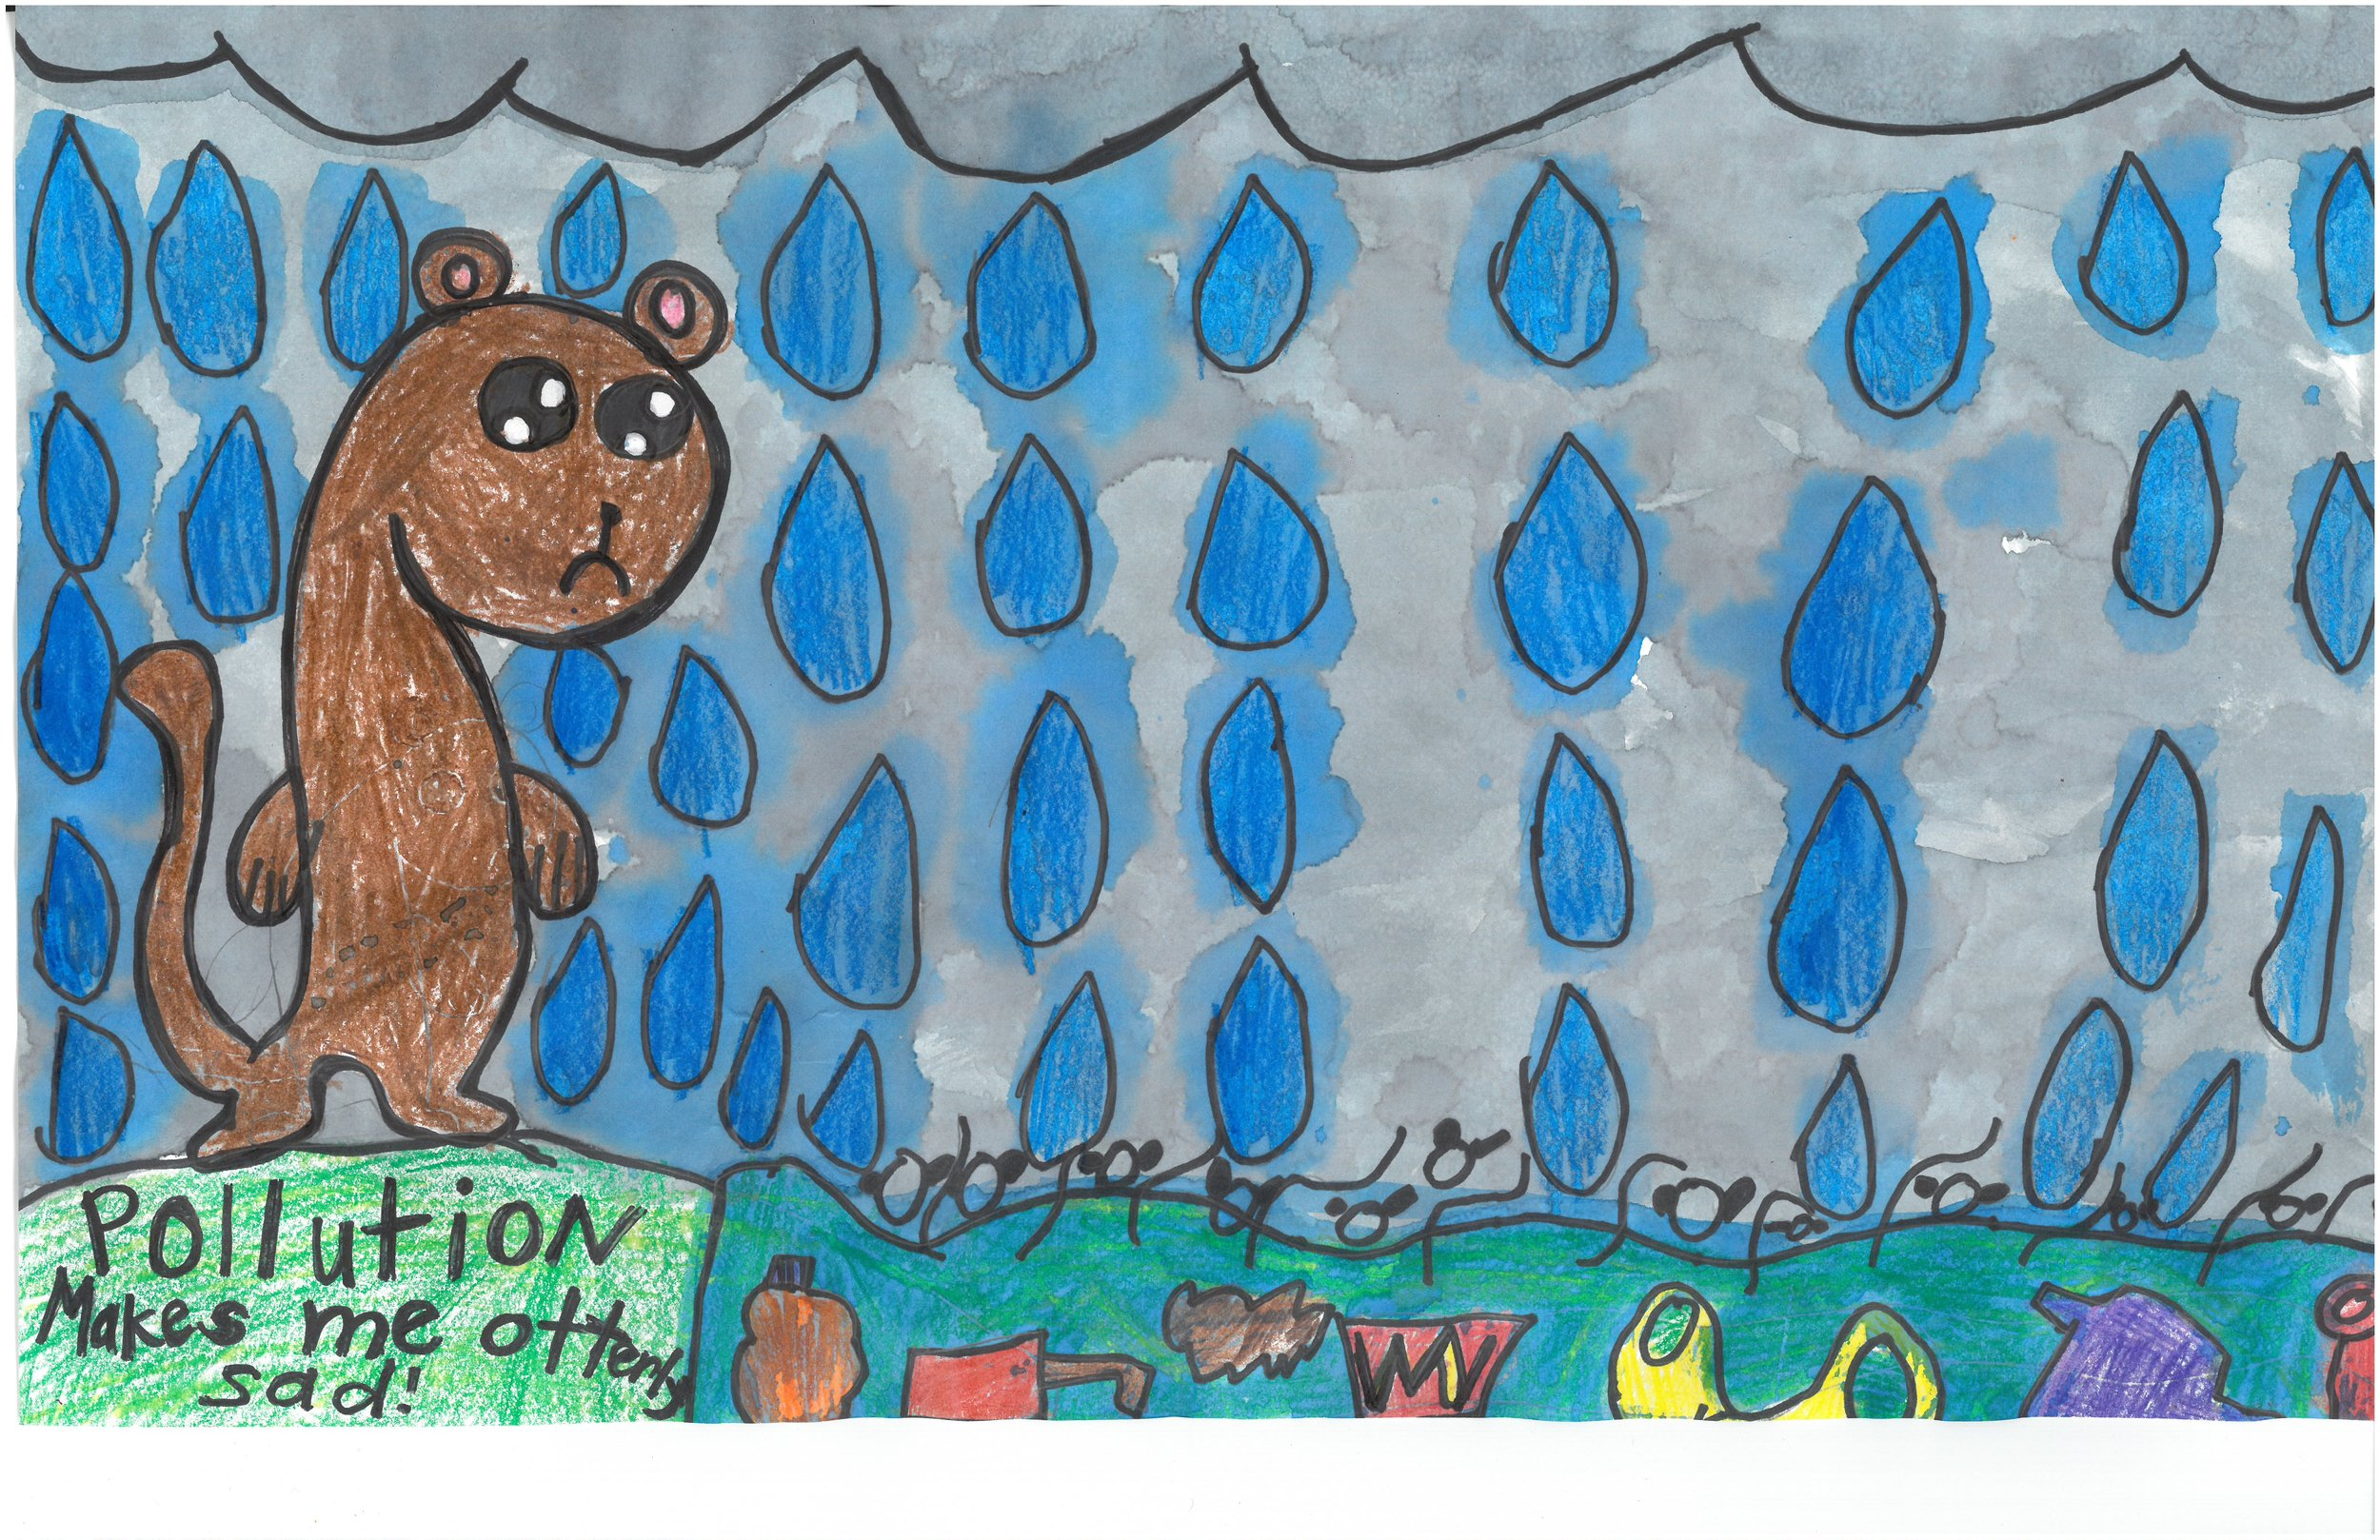 Morgan B.- 2nd grade at Idlewild Elementary